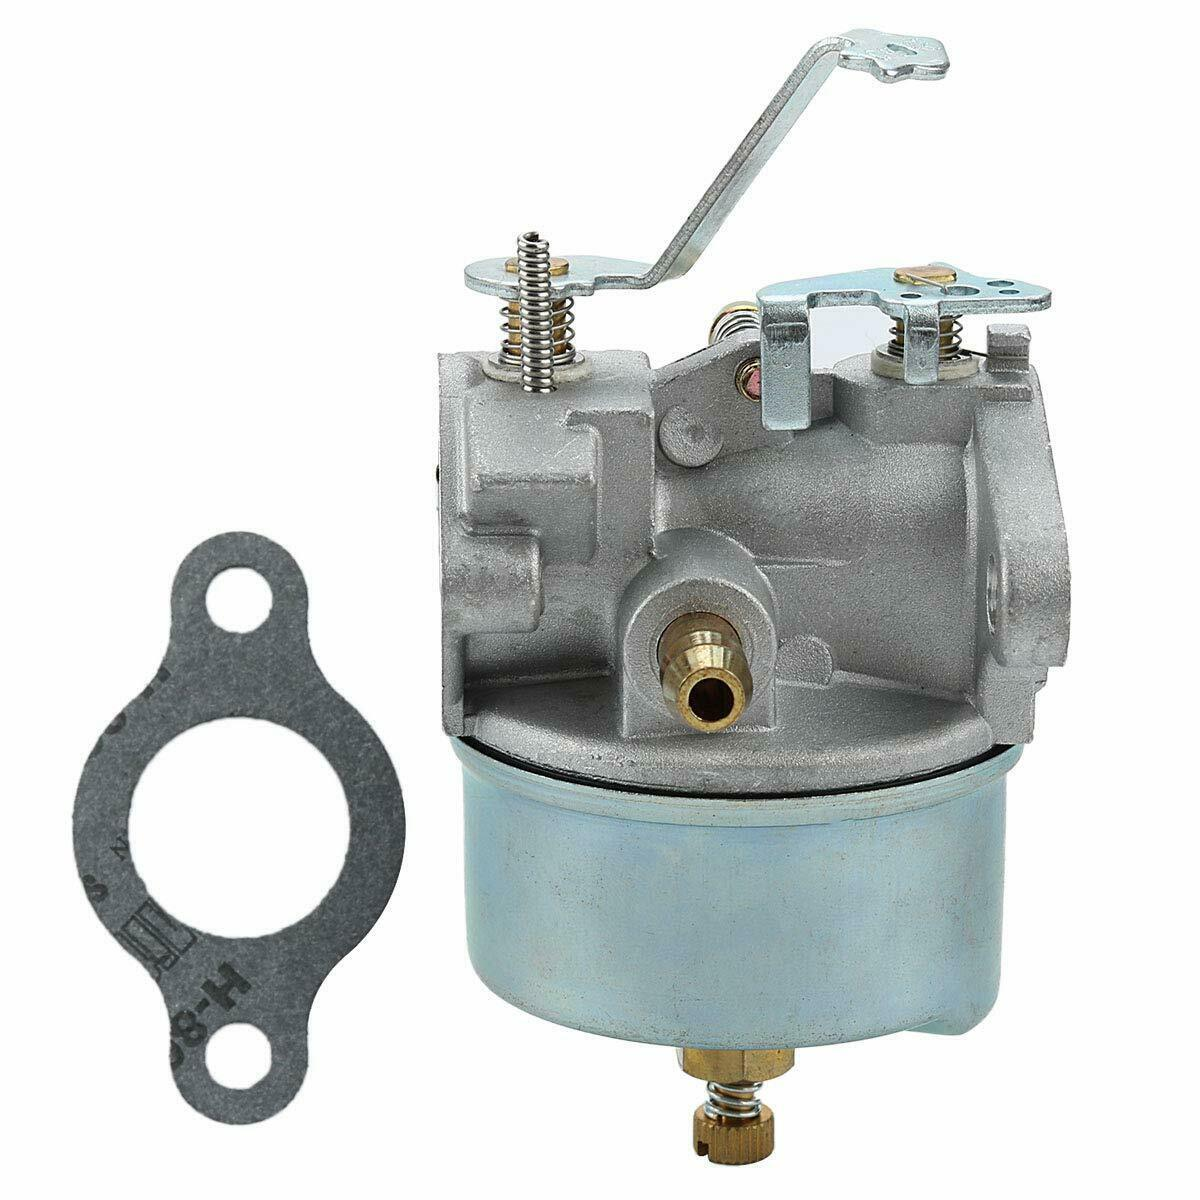 Replaces John Deere Model 624 Tiller Carburetor